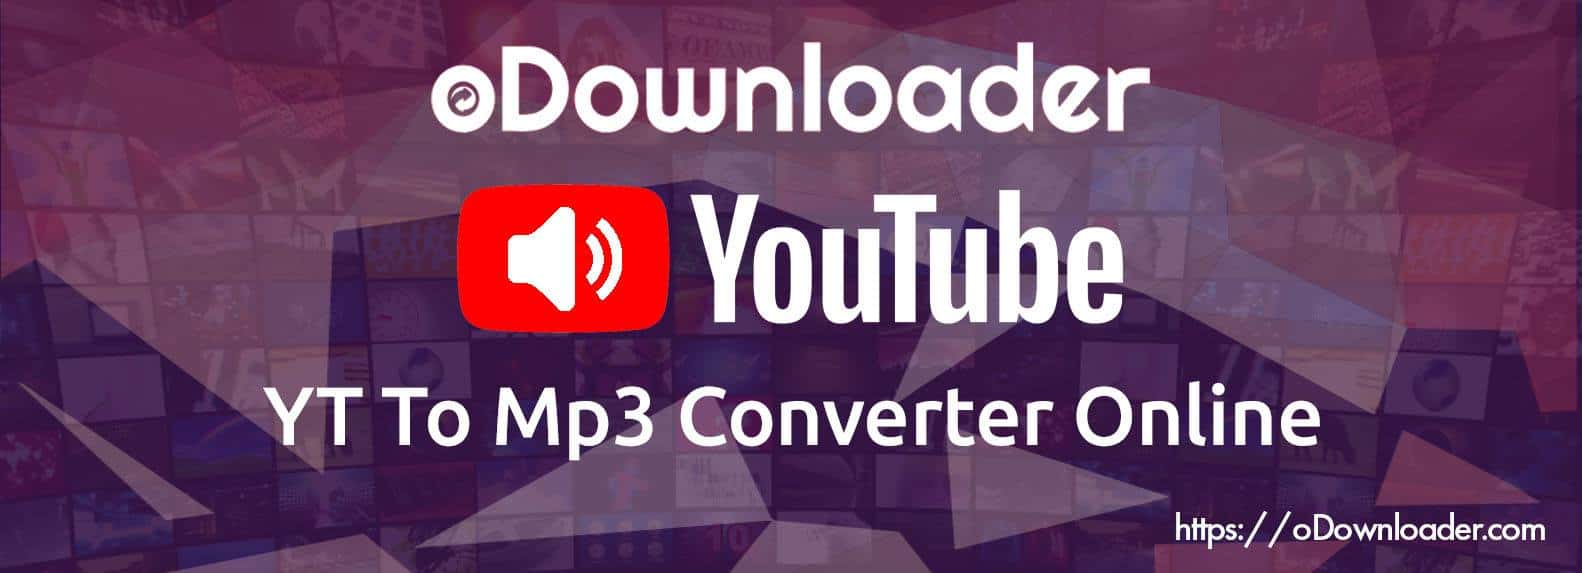 youtube to mp3 converter online free 320kbps